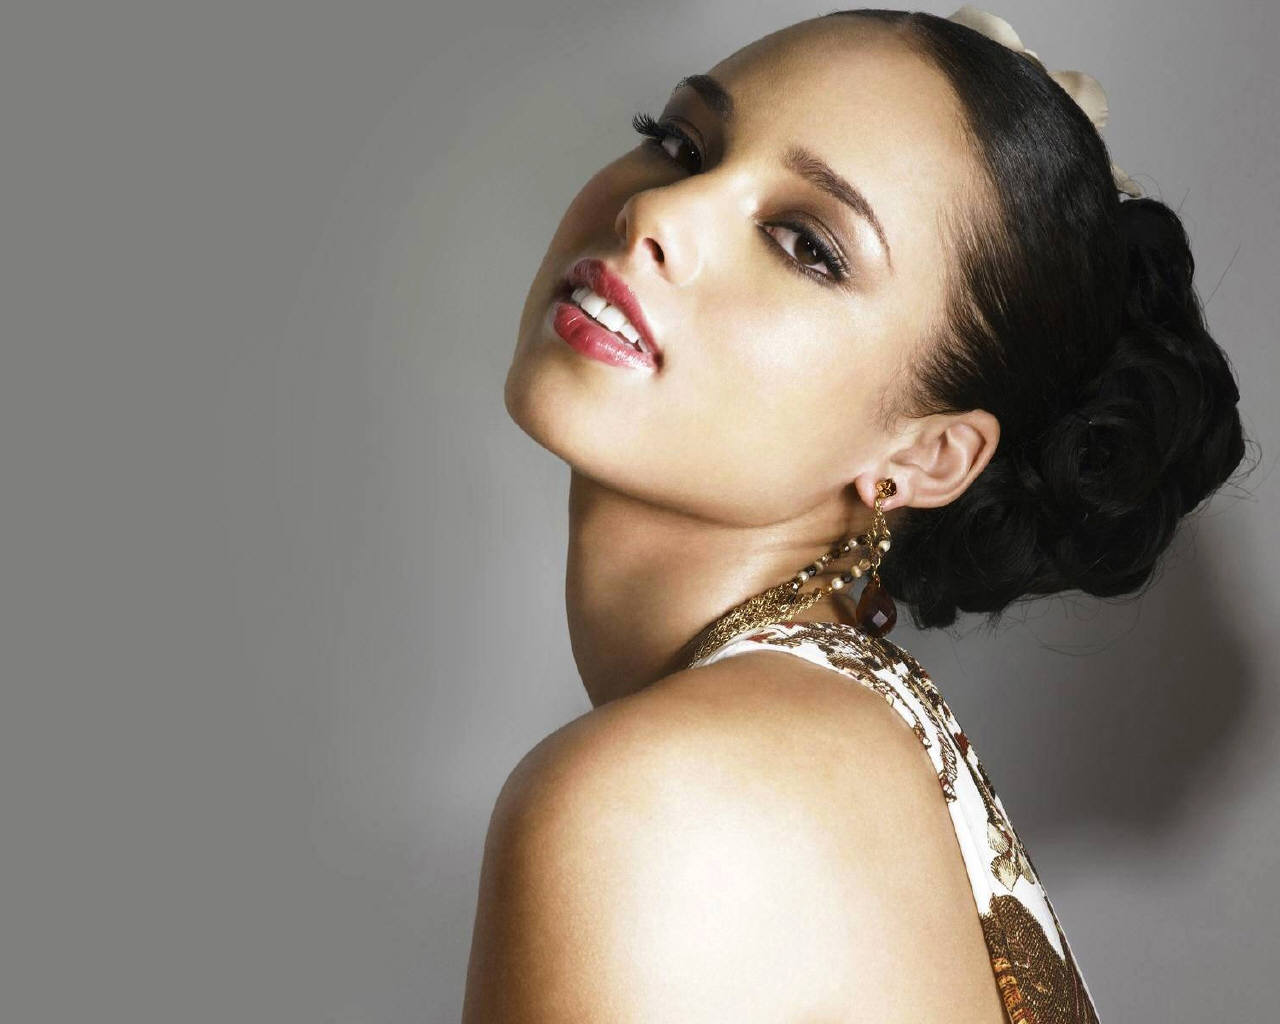 Alicia Keys has become the new face of Parfums Givenchy.